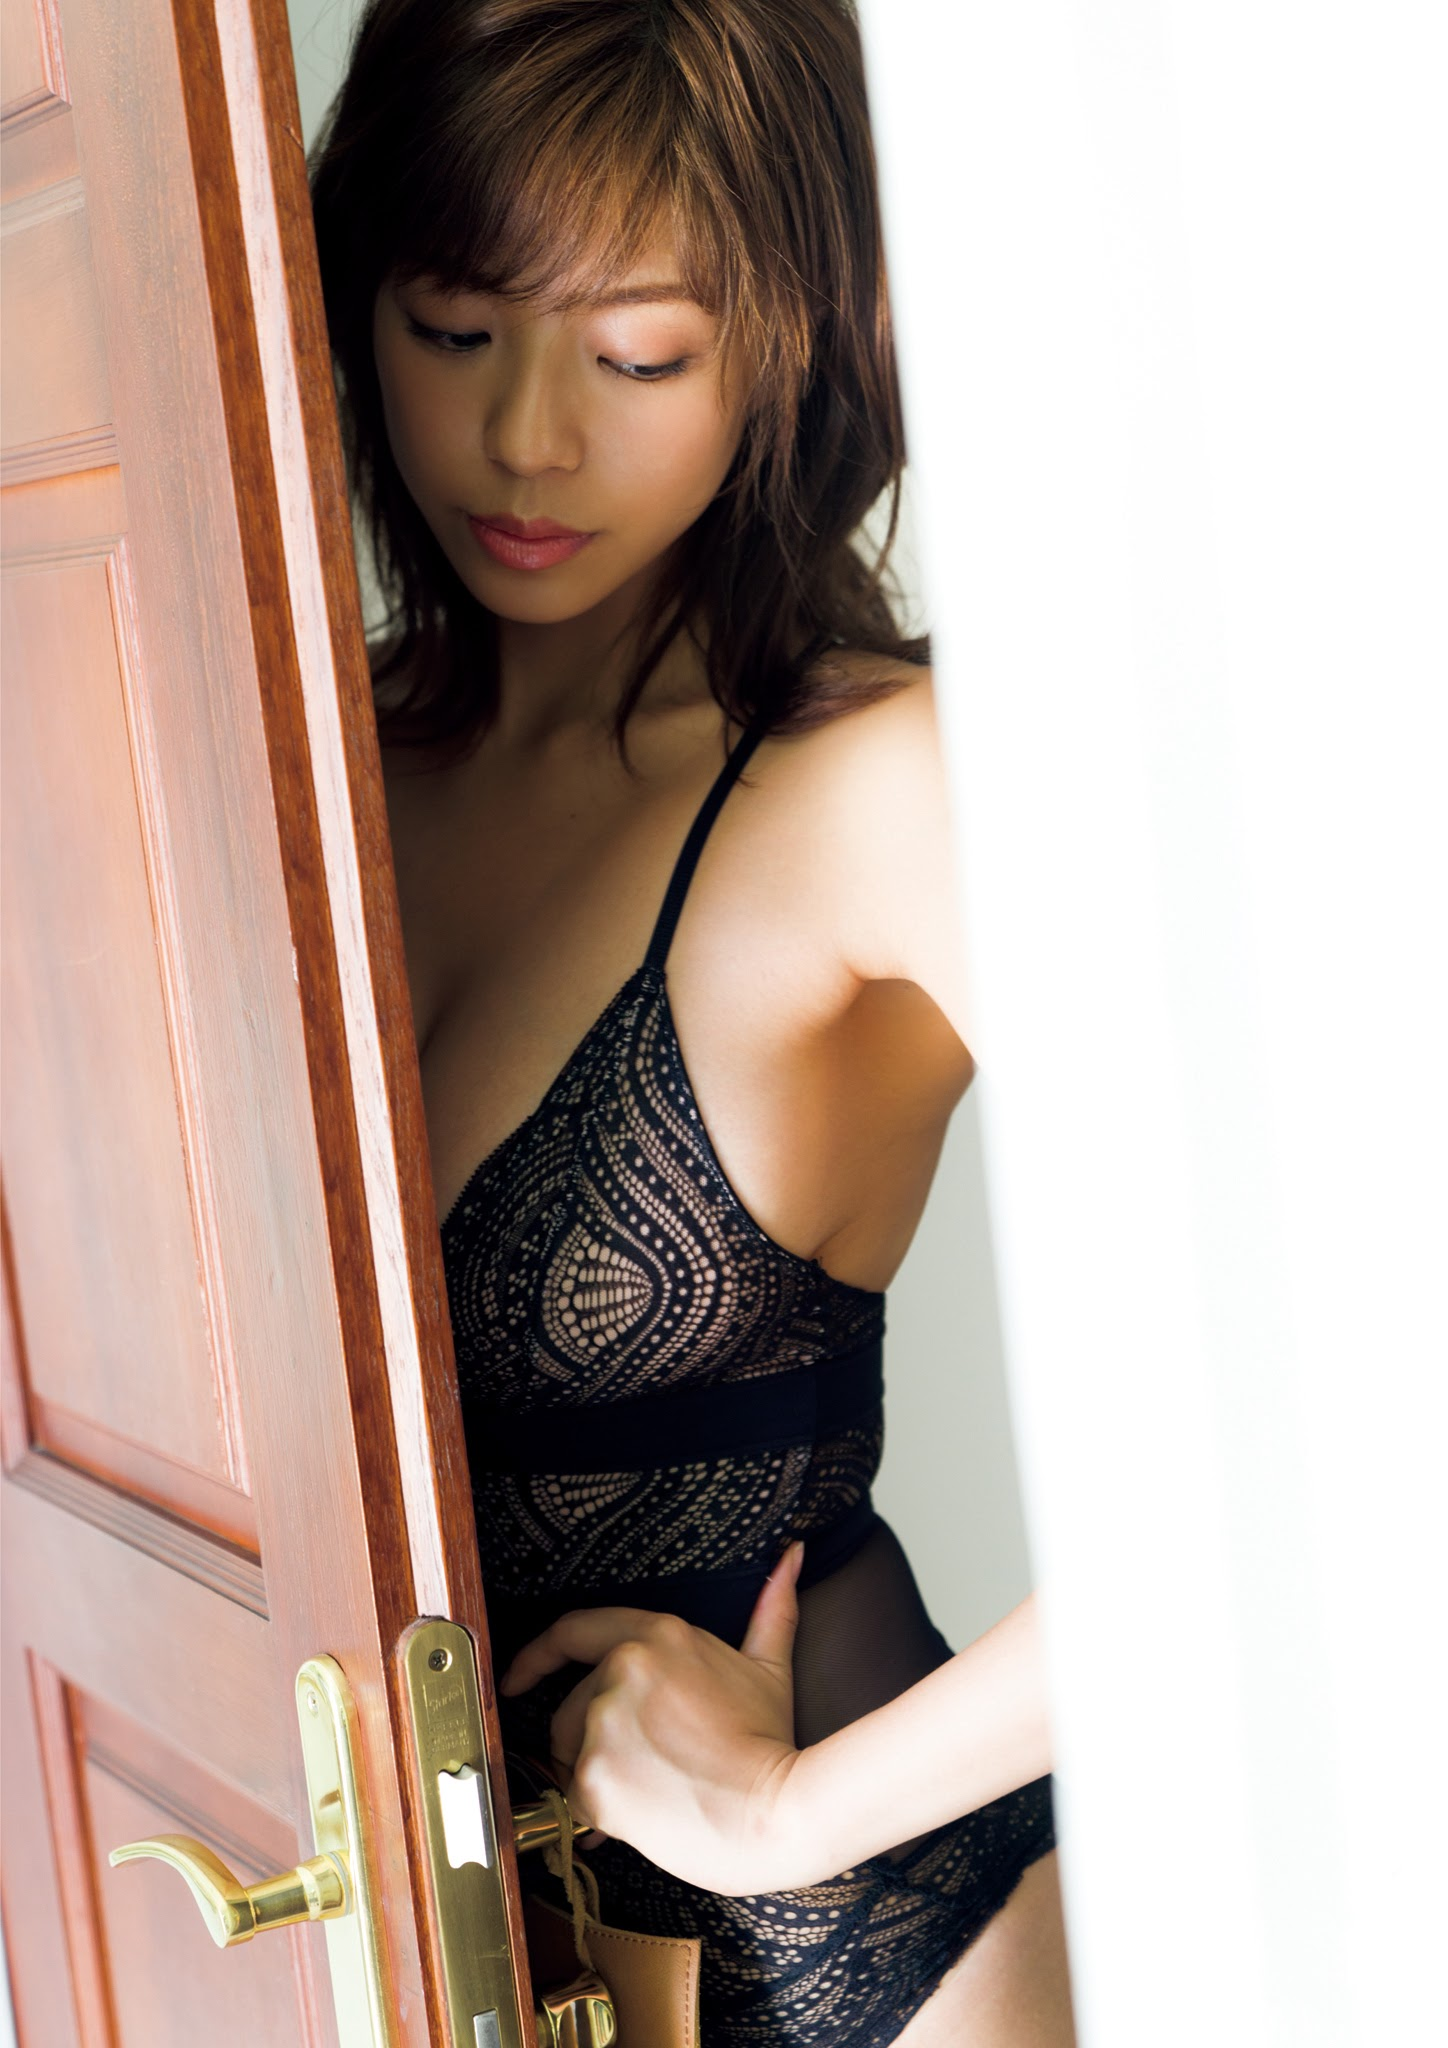 Super body of H cup Minami Wachi 2020 that exposes body and mind in tropical Thailand060